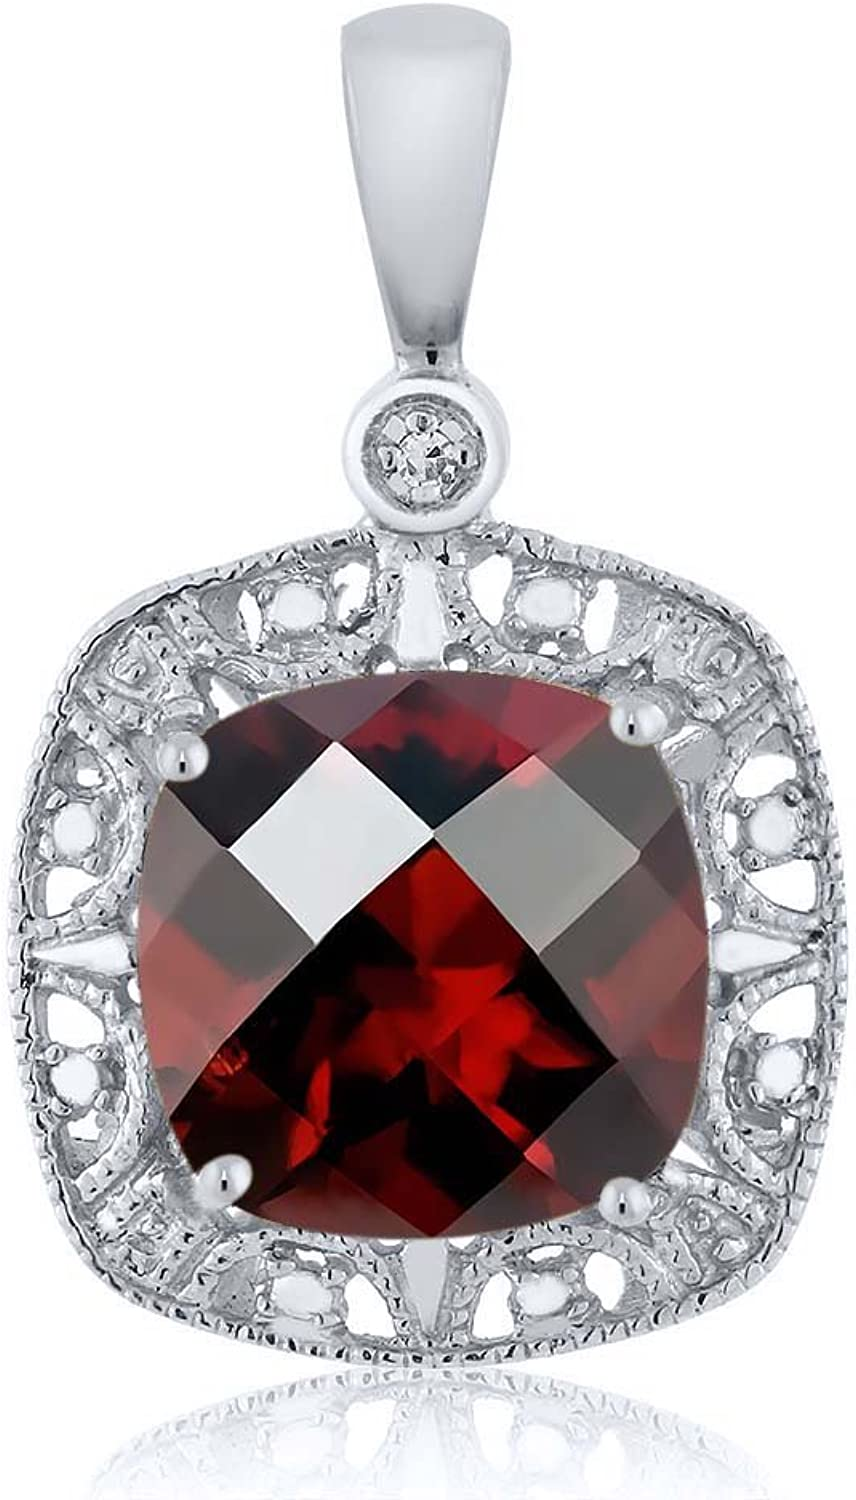 10K White gold Women's 8mm Cushion Checkerboard Red Garnet and Diamond Accent Necklace 2.4 cttw